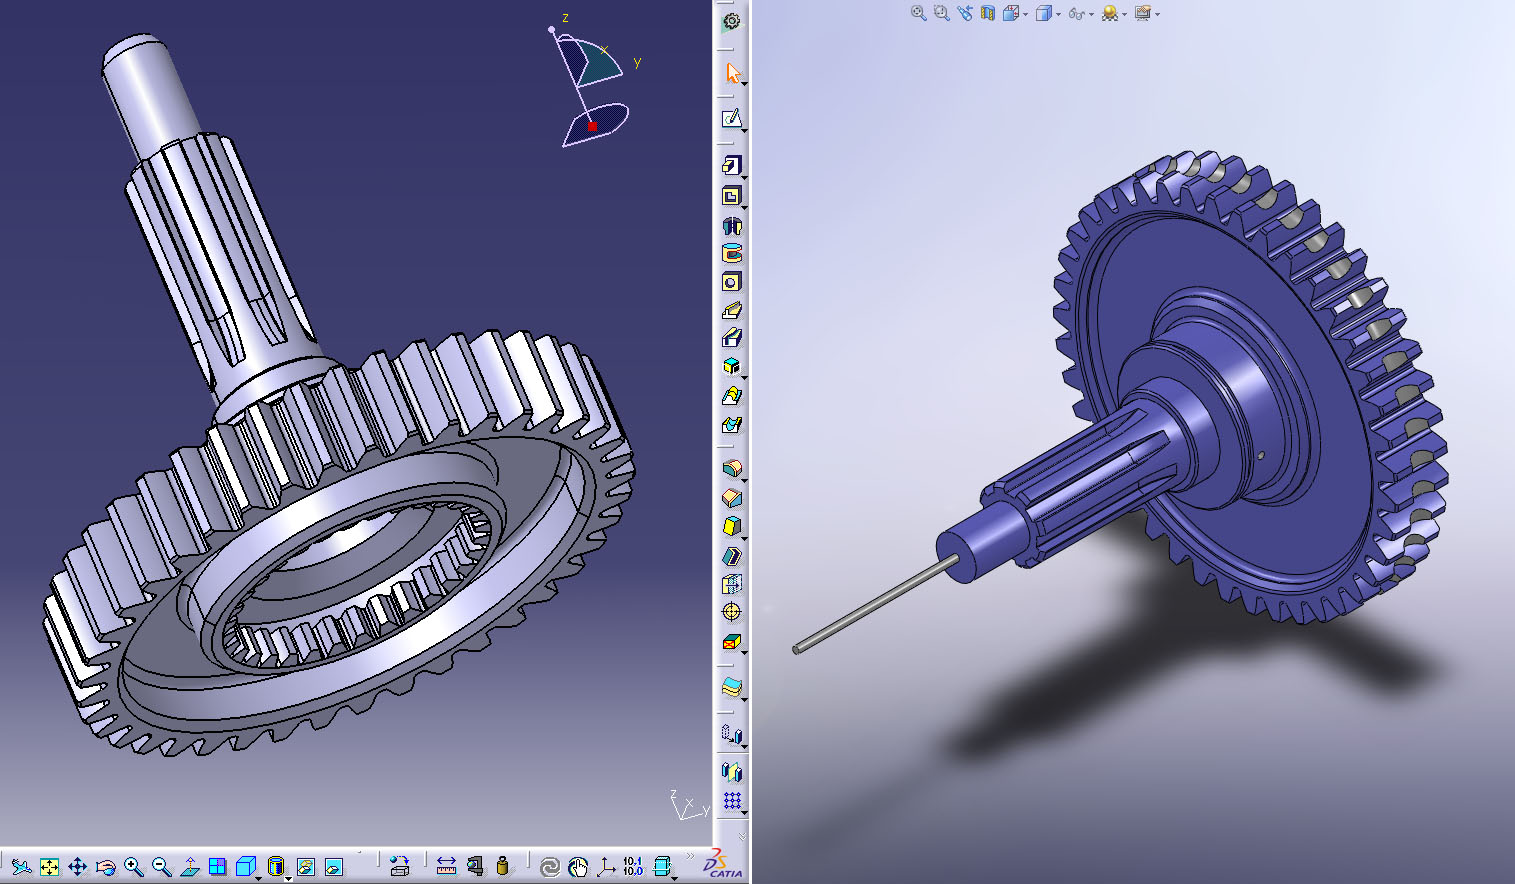 Original CATIA model, and version edited by SOLIDWORKS